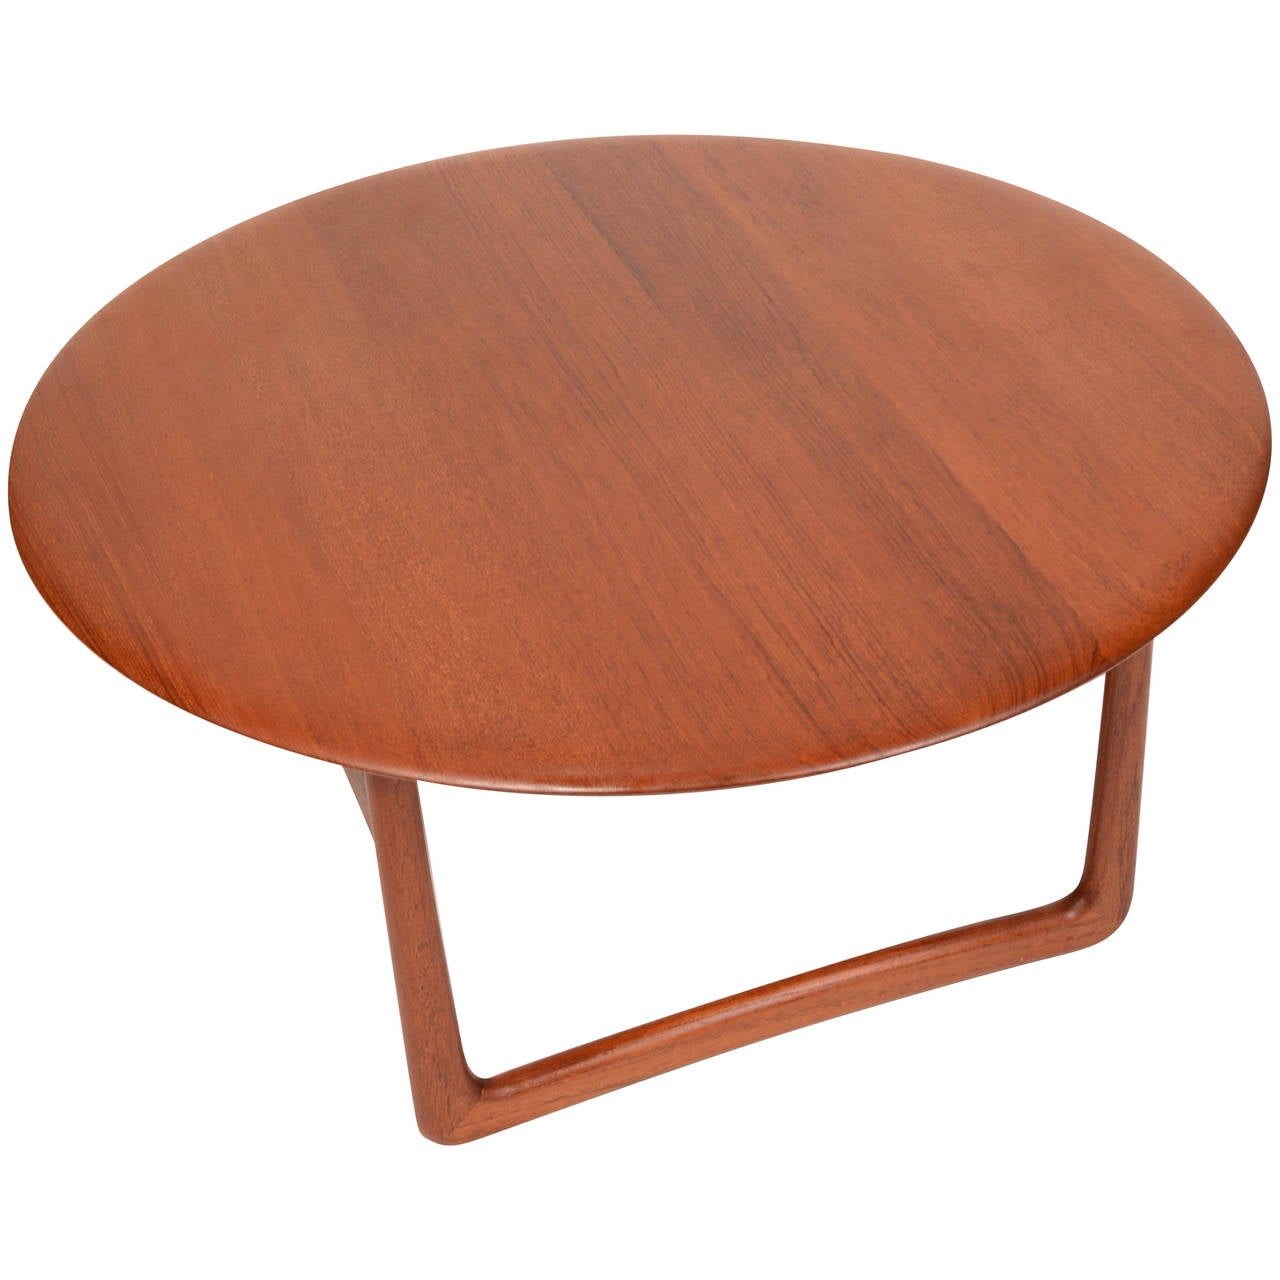 Solid teak danish modern round coffee table by povl dinesen for solid teak danish modern round coffee table by povl dinesen for france sn 1 geotapseo Gallery